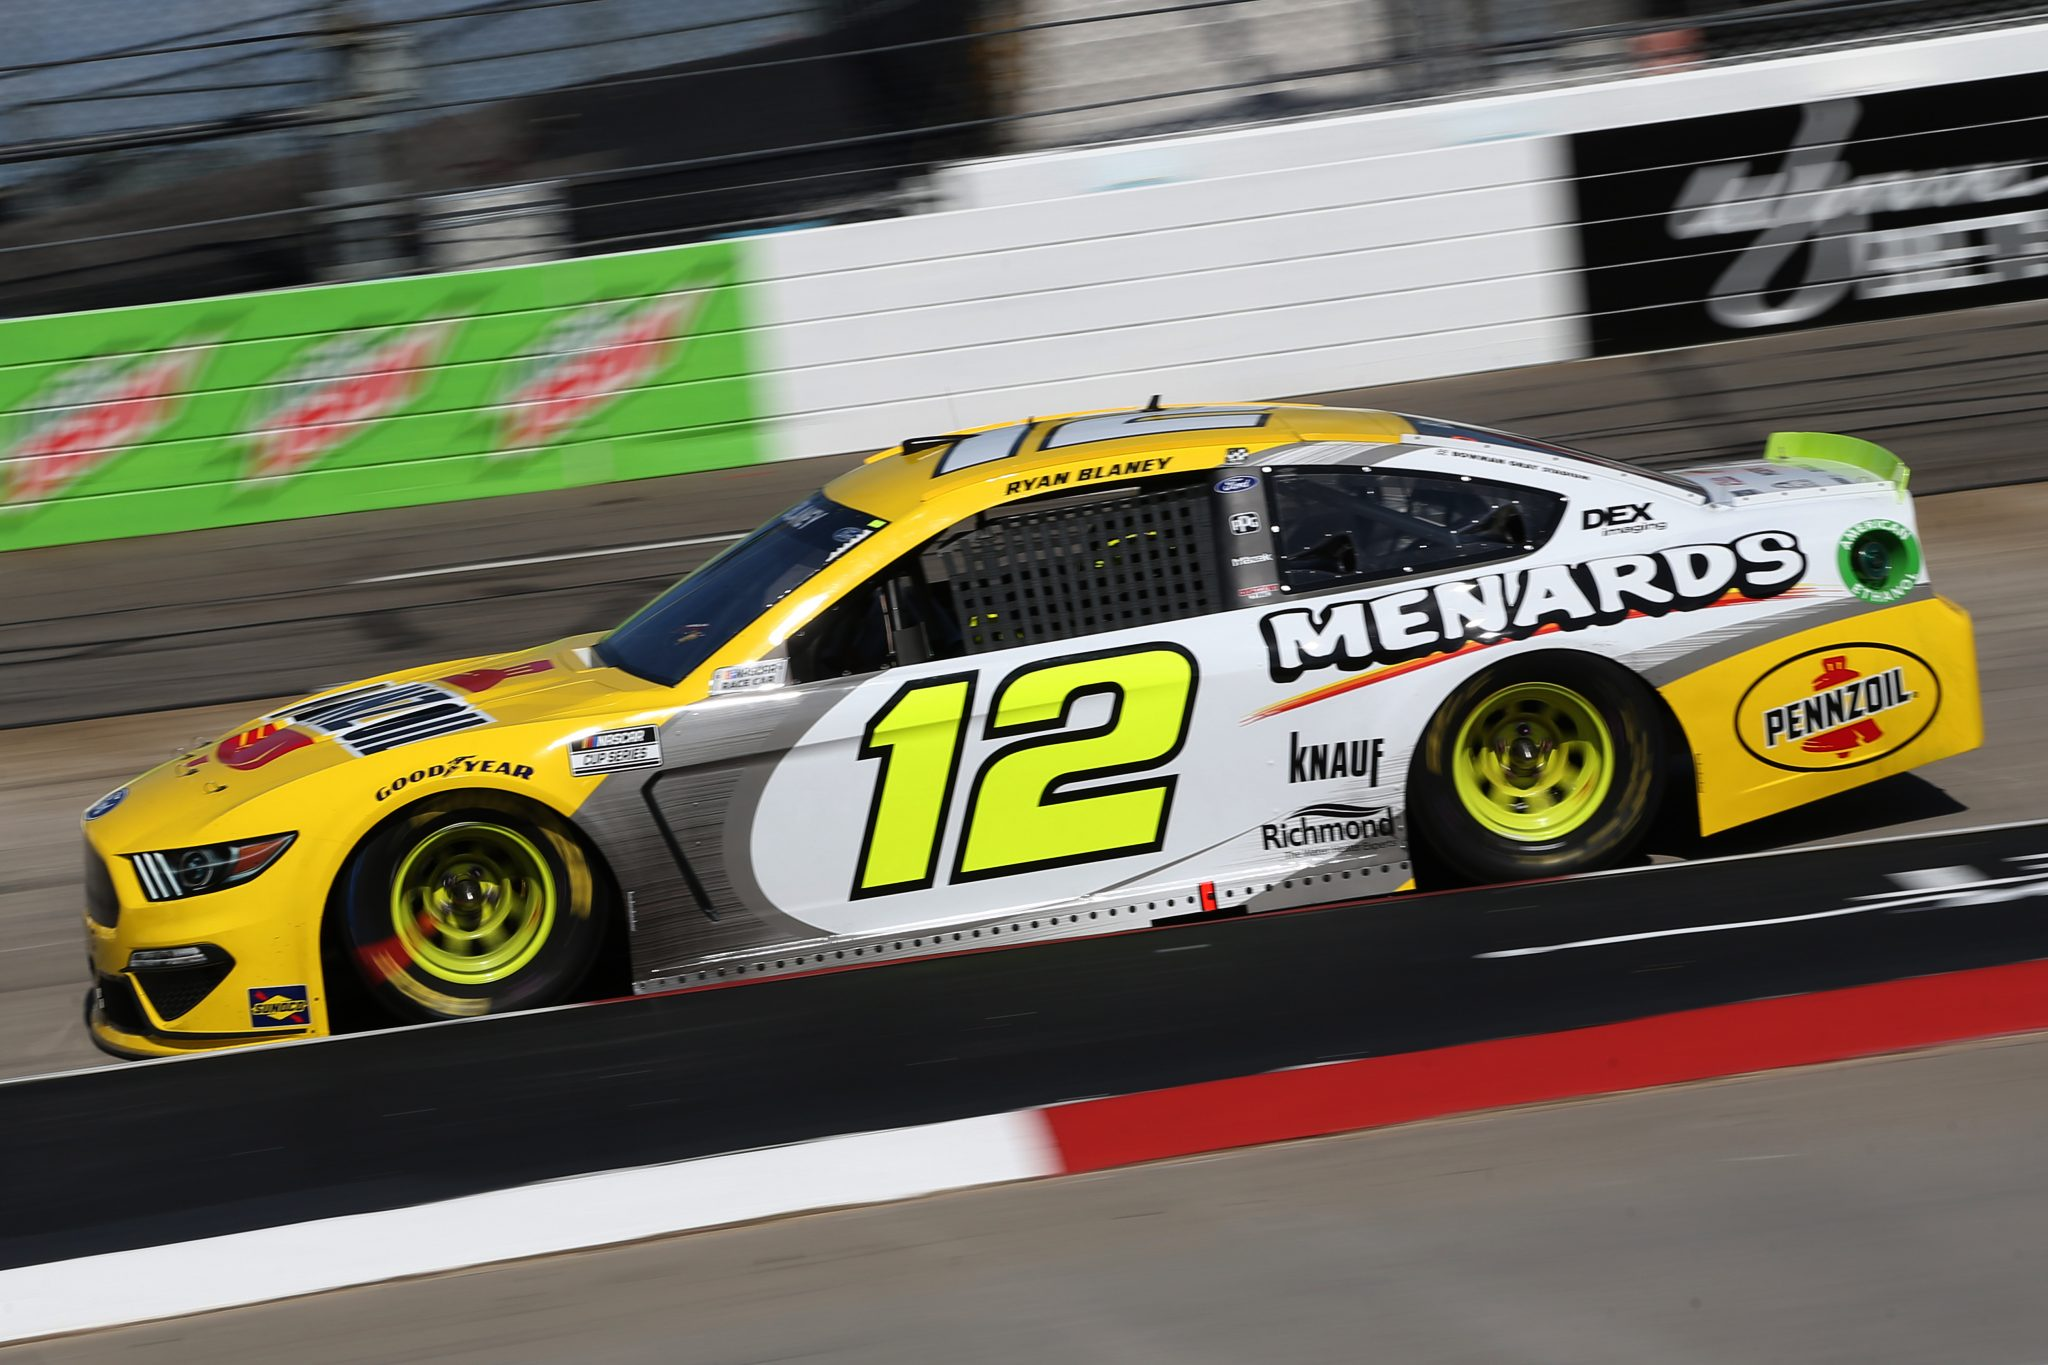 MARTINSVILLE, VIRGINIA - APRIL 11: Ryan Blaney, driver of the #12 Menards/Pennzoil Ford, drives during the NASCAR Cup Series Blue-Emu Maximum Pain Relief 500 at Martinsville Speedway on April 11, 2021 in Martinsville, Virginia. (Photo by Brian Lawdermilk/Getty Images) | Getty Images